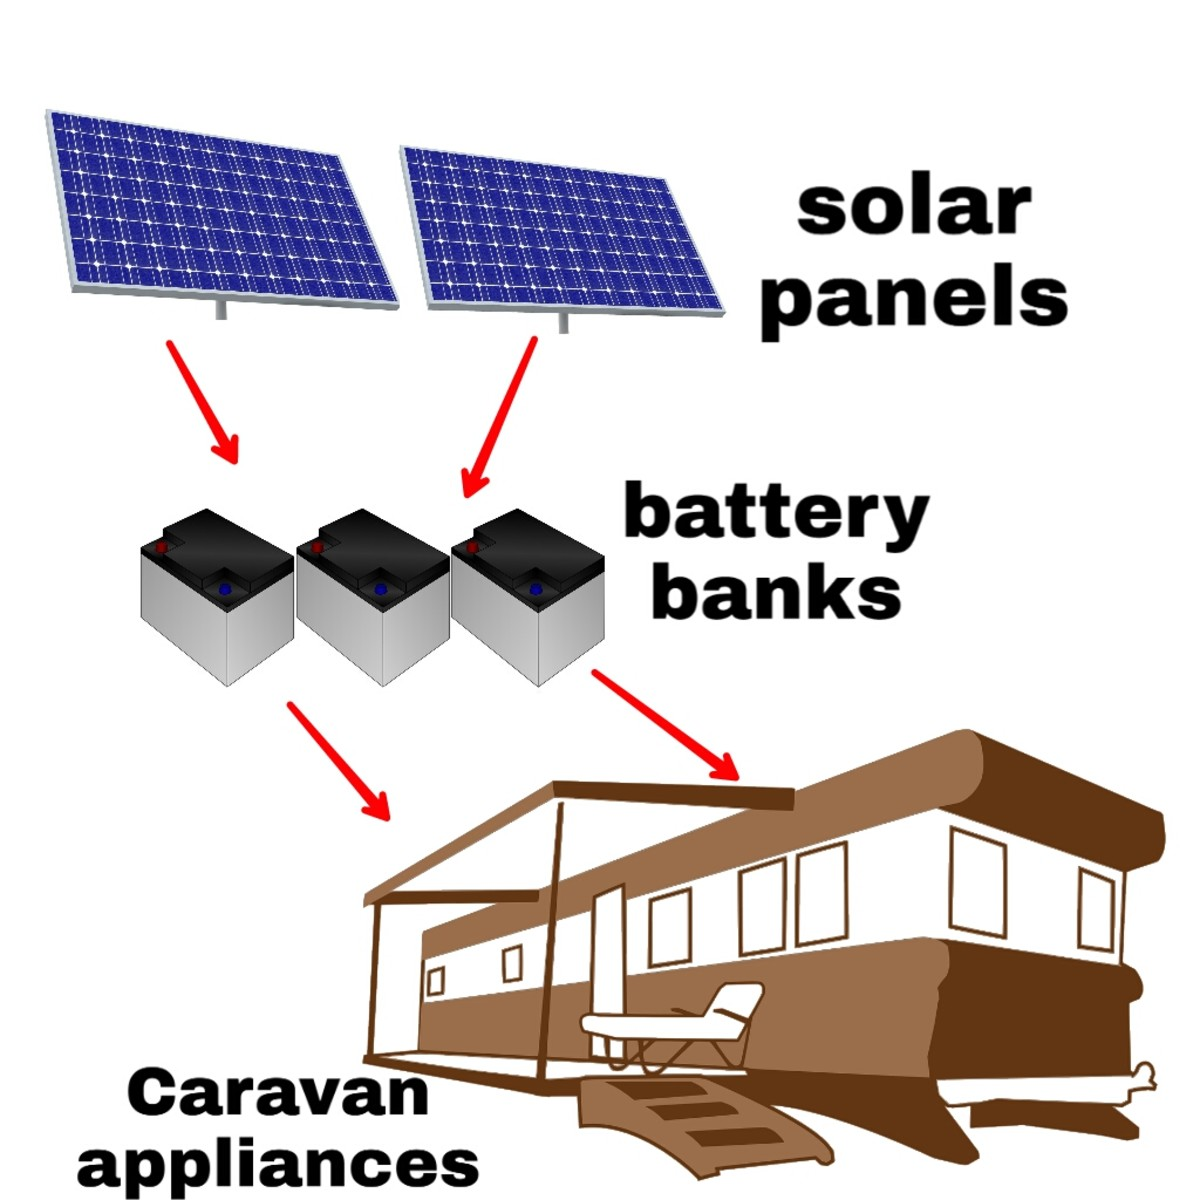 Model of an off-grid solar power system